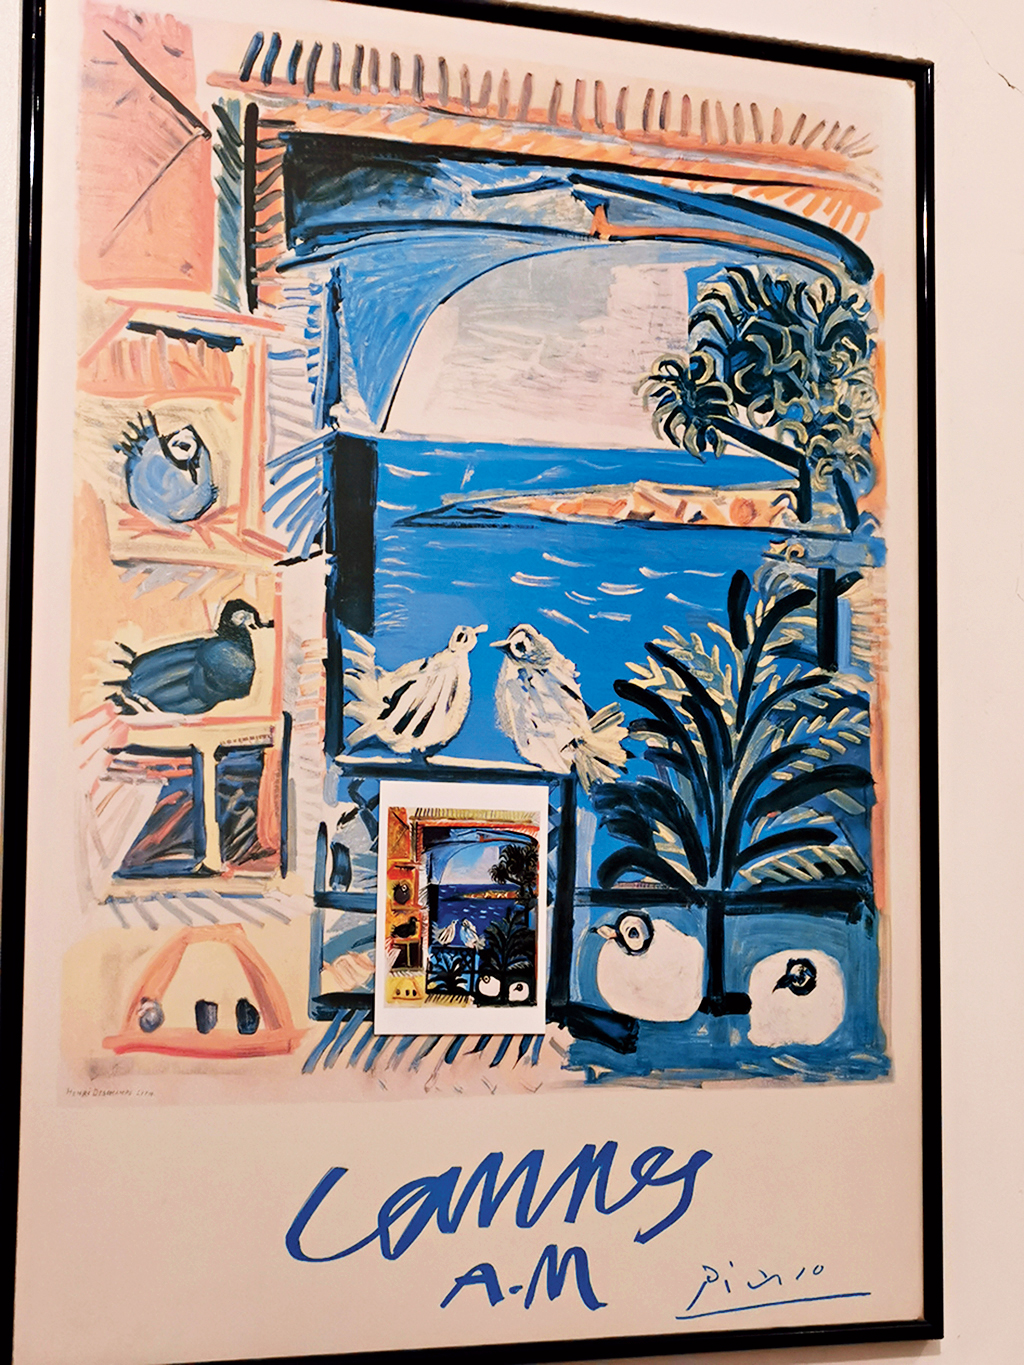 One of the faded posters a friend hangs on to is from Picasso's 1958 series of paintings of dovecotes against the blue sea at Cannes